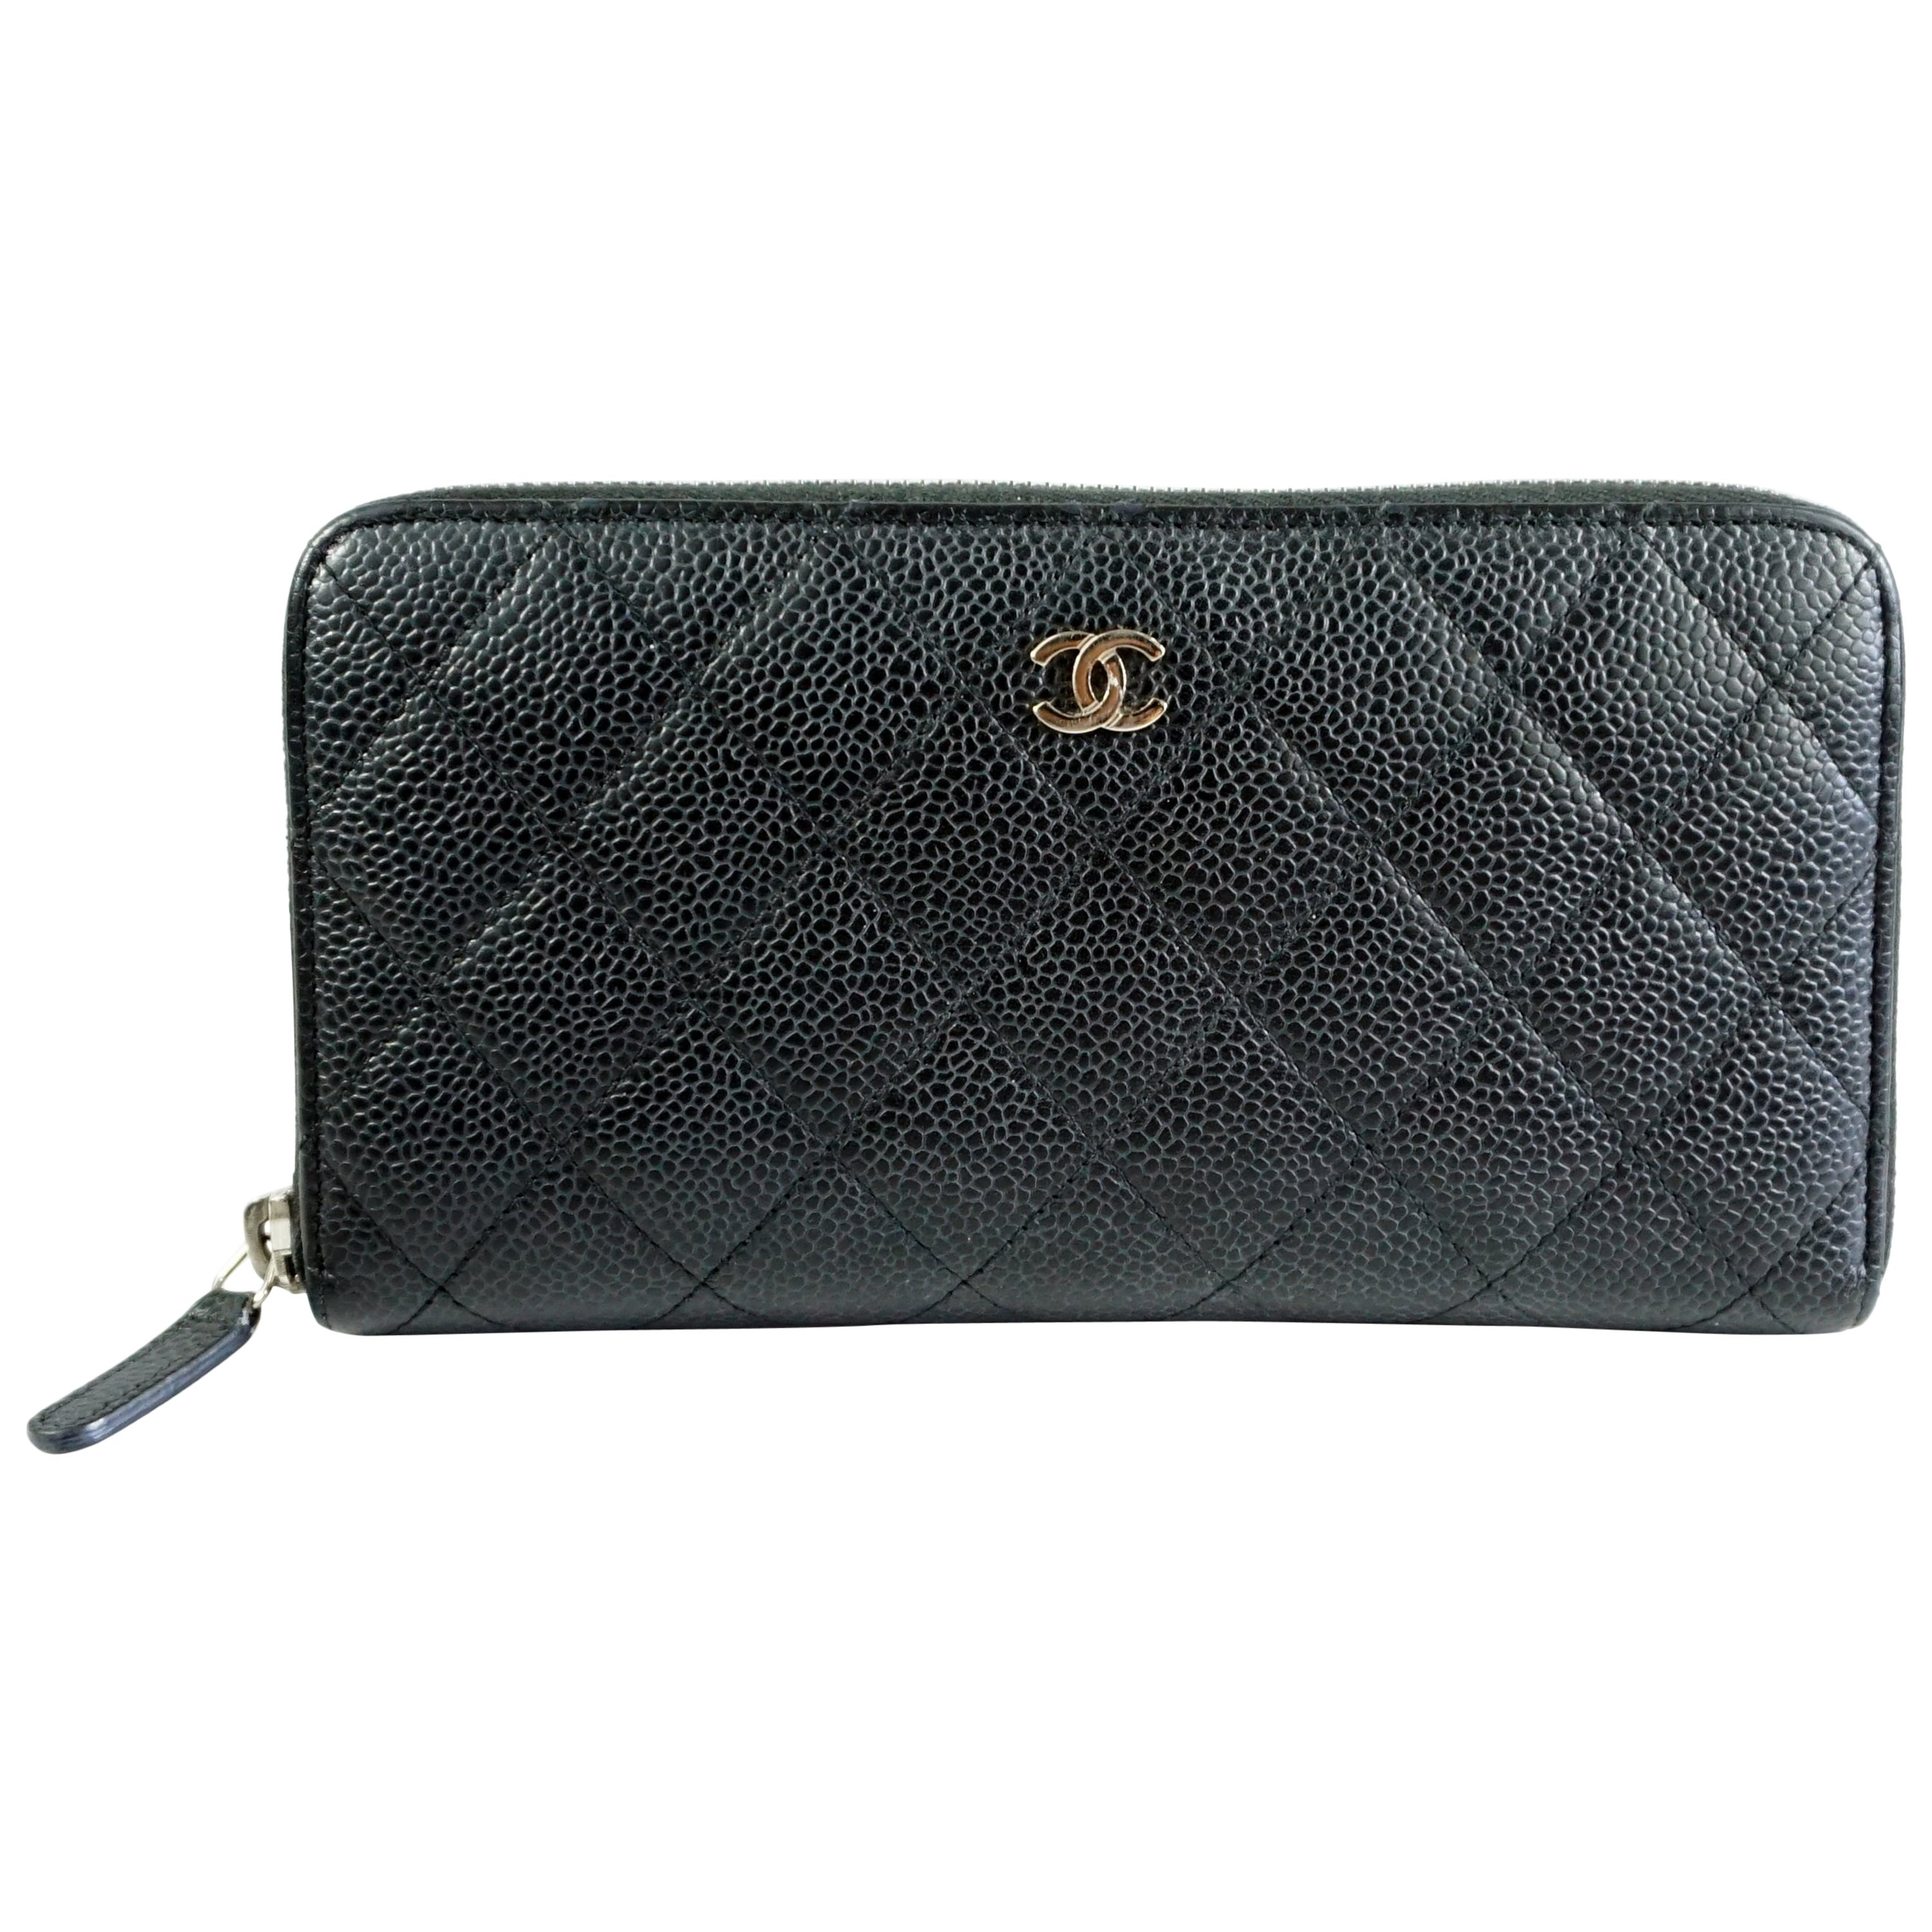 e073ca845c7c Chanel Black Caviar Leather Zippy Wallet at 1stdibs